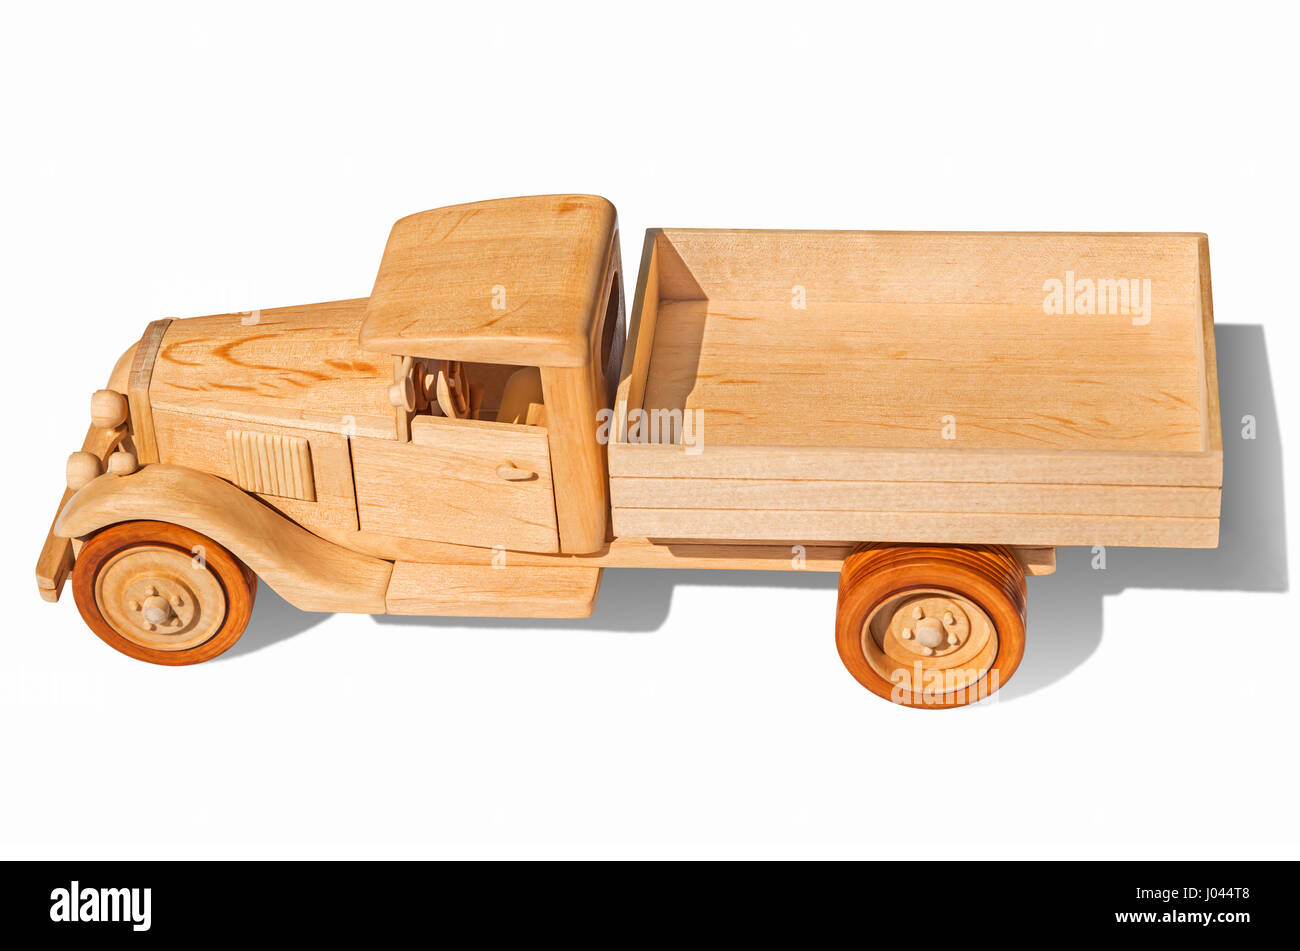 Wooden model of retro freight car on a white background - Stock Image